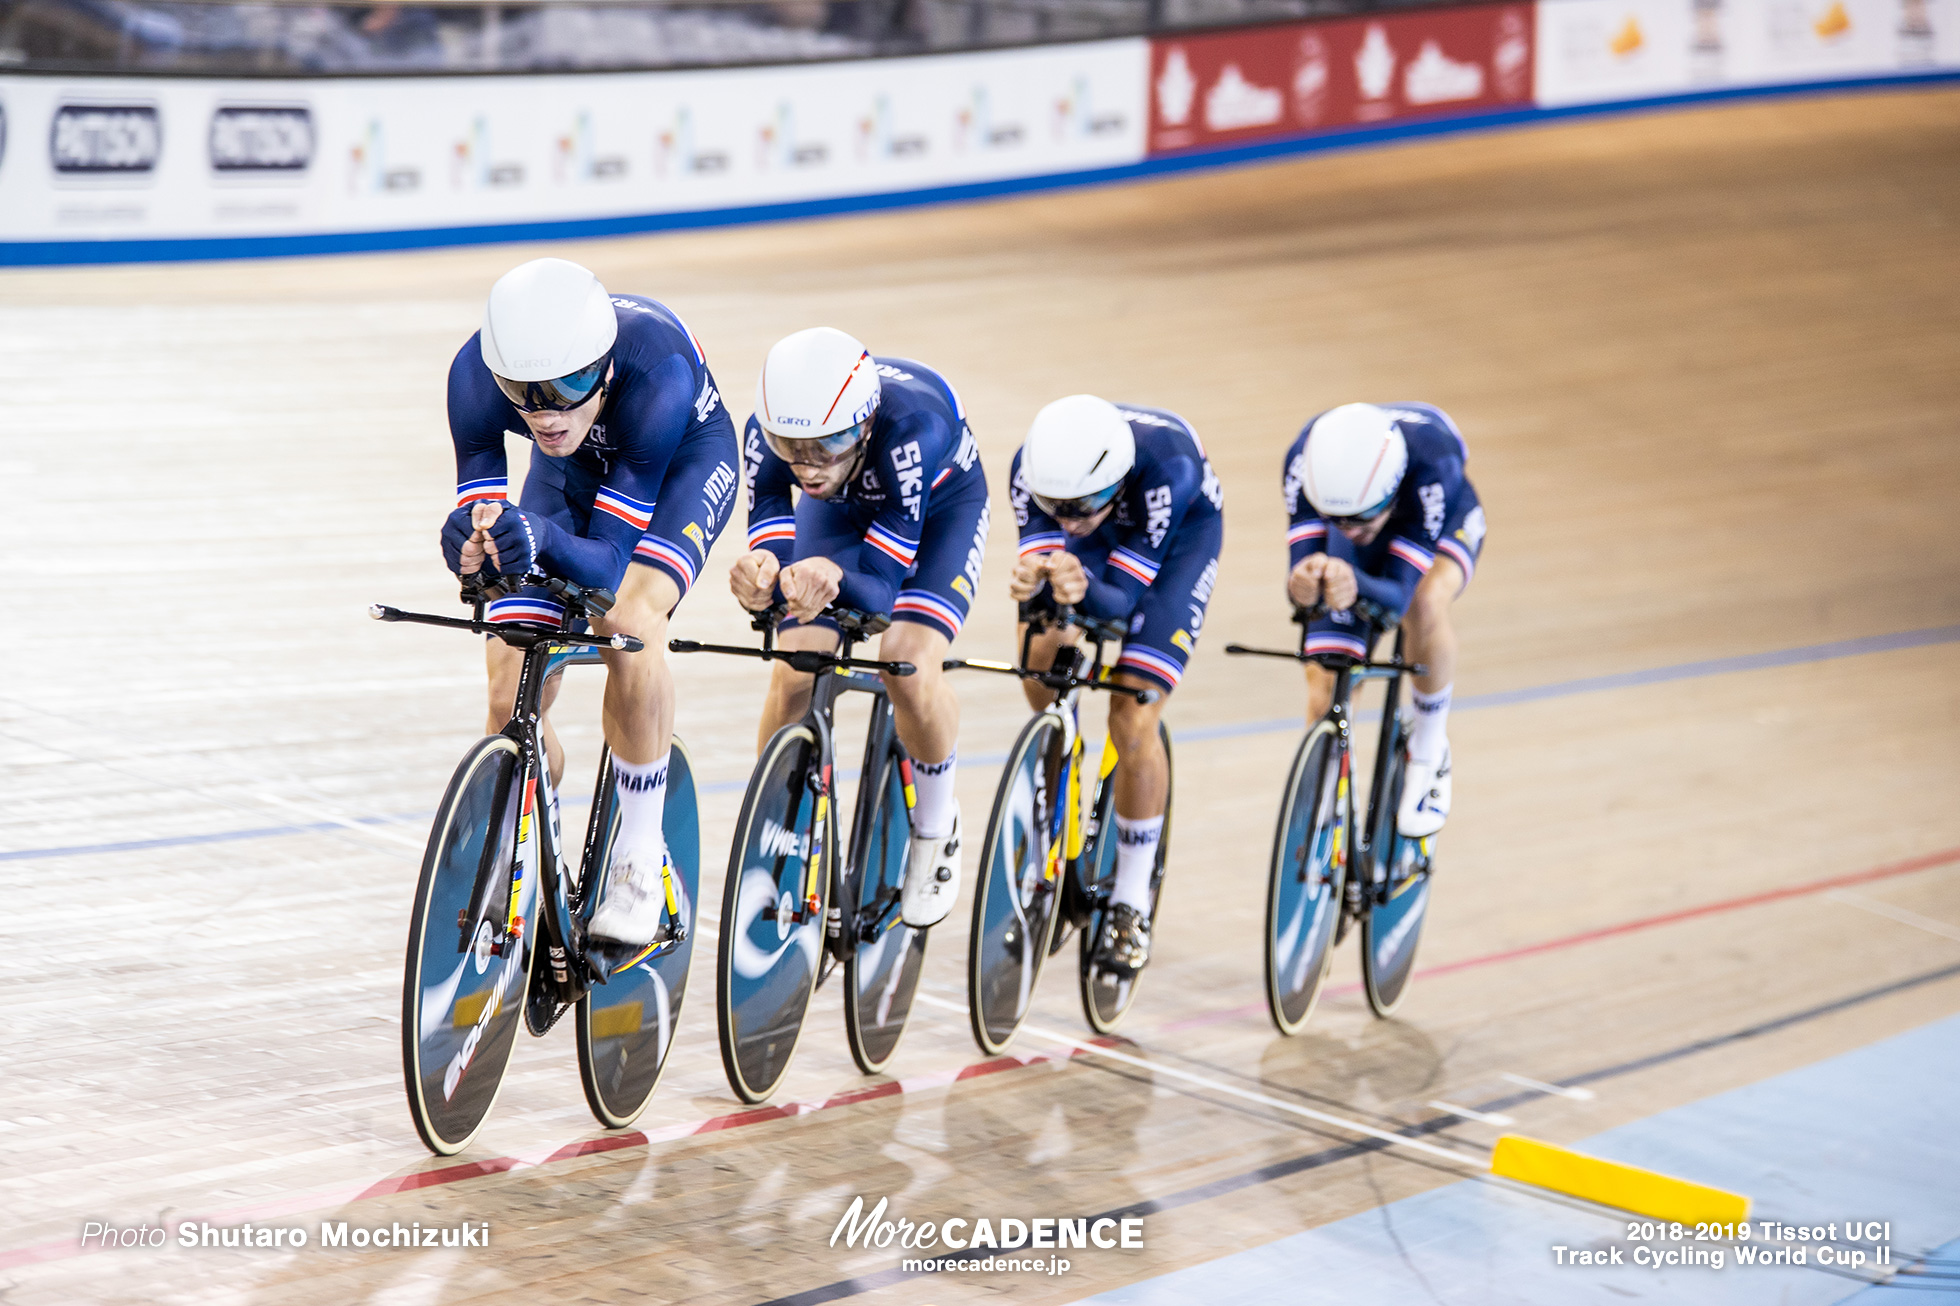 2018-2019 Tissot UCI Track Cycling World Cup II Men's Team Pursuit